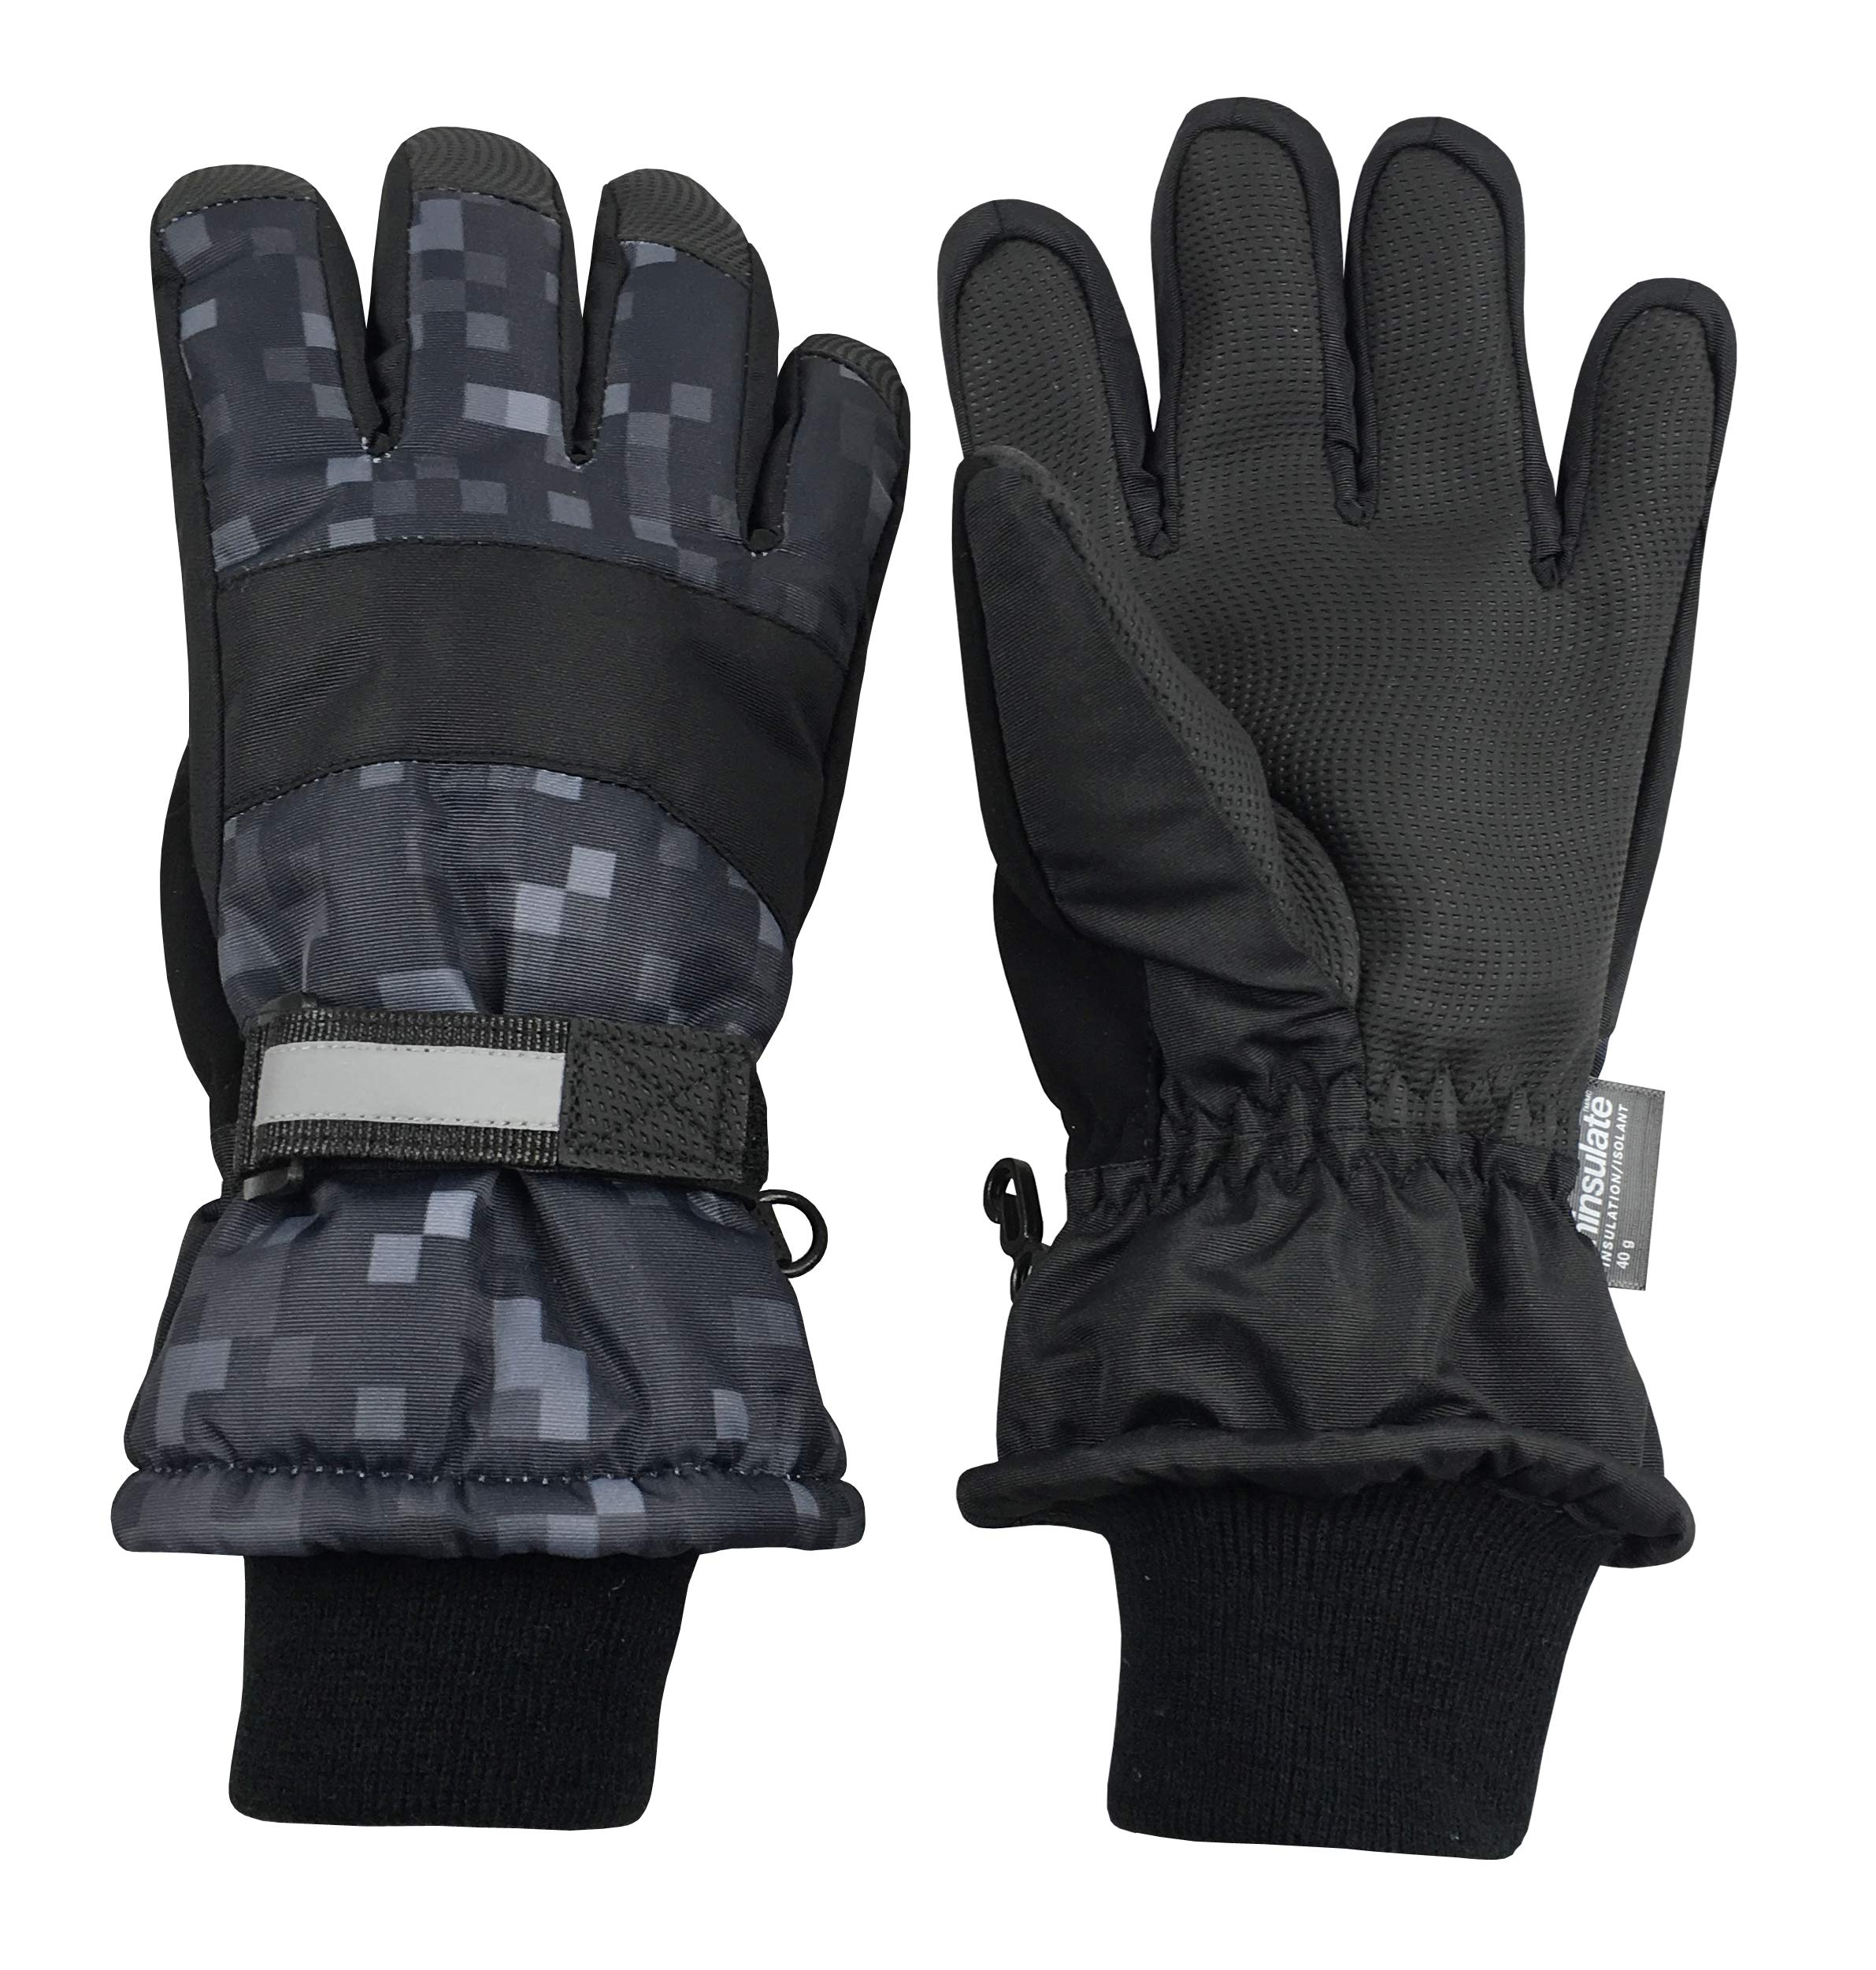 N'Ice Caps Kids Cold Weather Waterproof Camo Print Thinsulate Ski Gloves (Black Pixels, 4-5 Years)